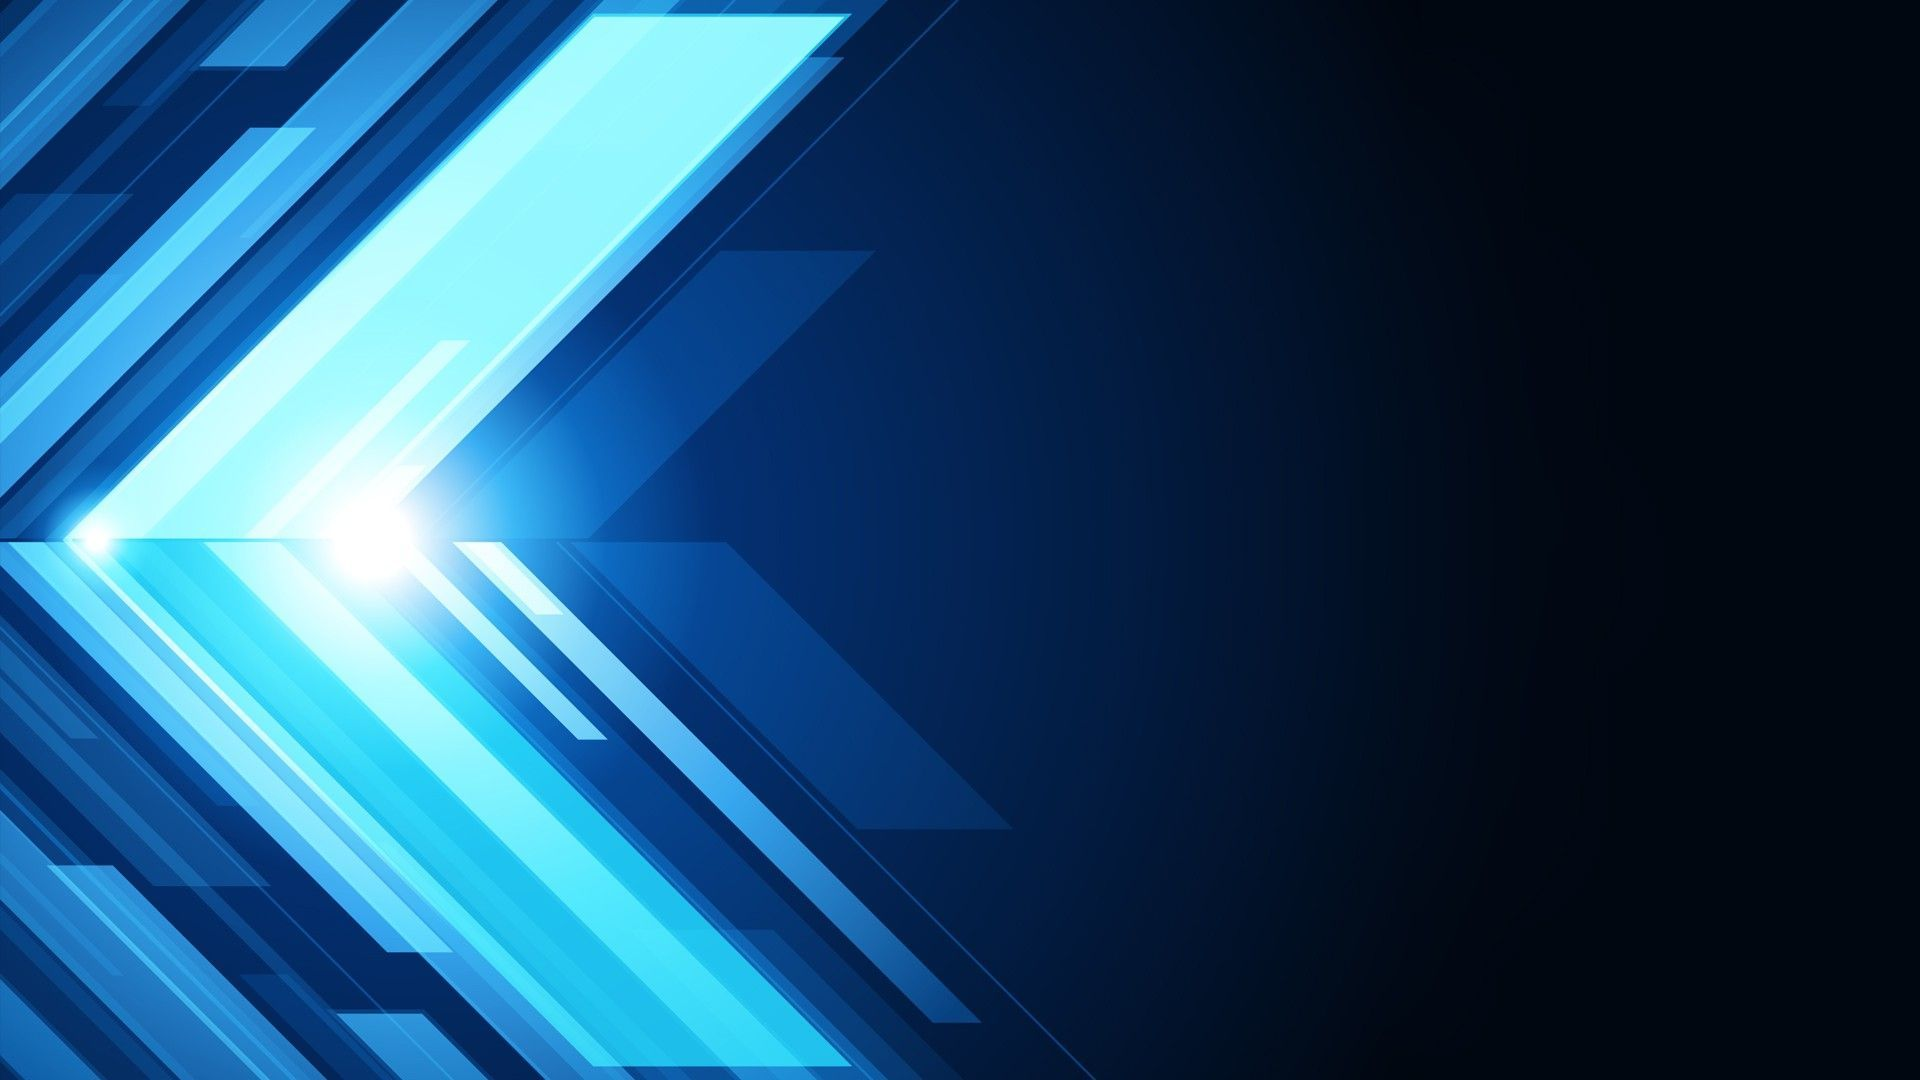 Abstract arrow wallpaper 27040 1920x1080 px for Updated wallpaper designs